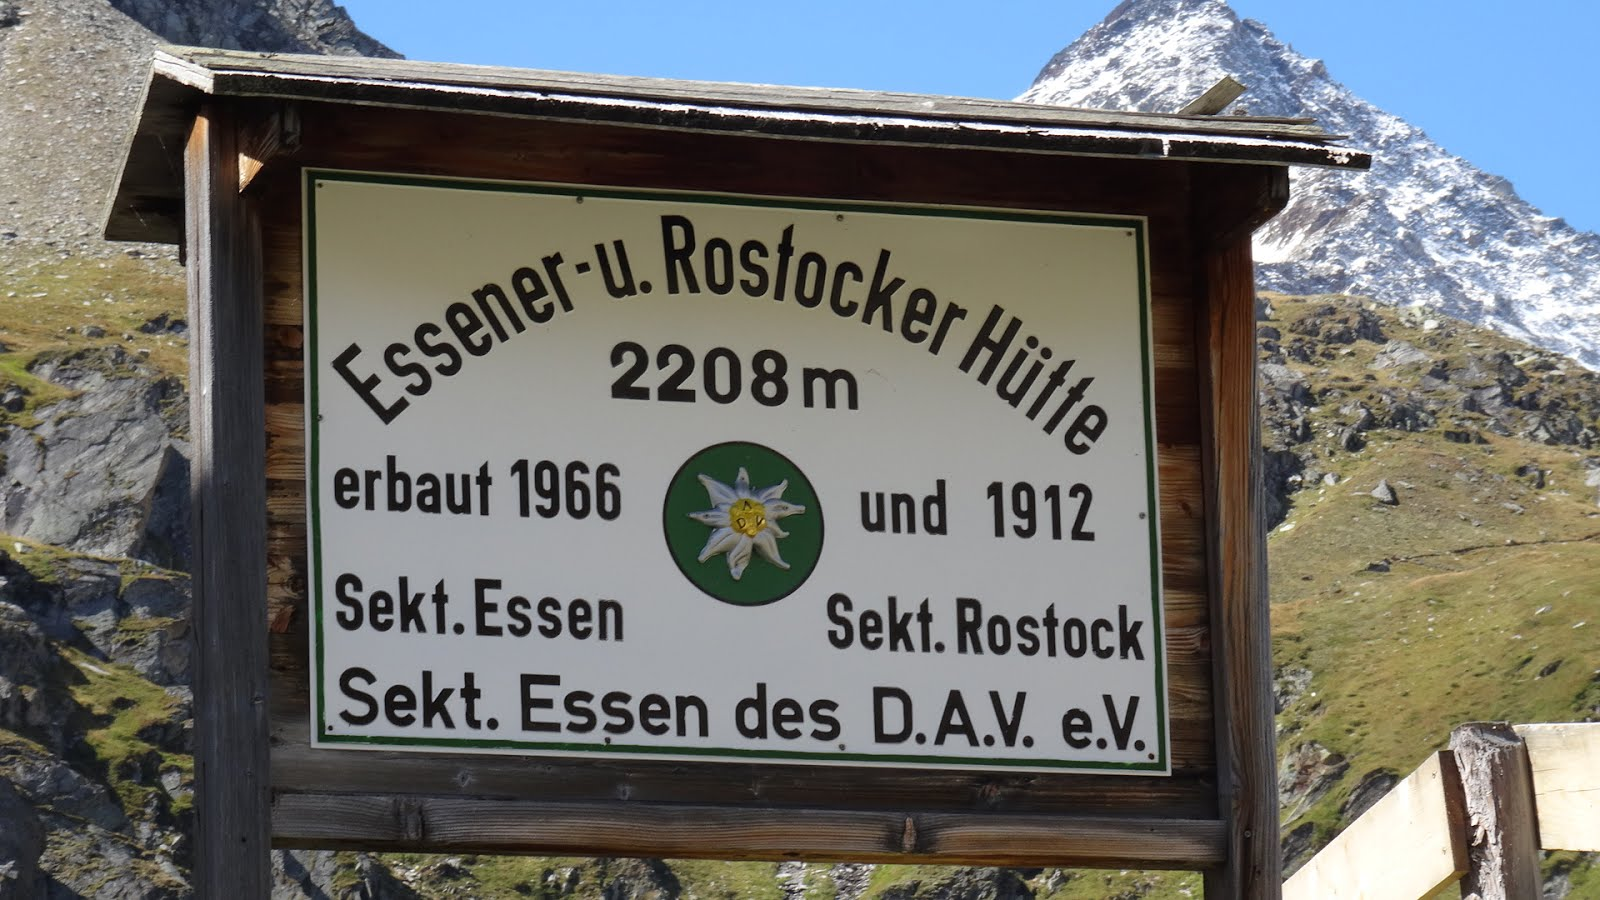 Essener-Rostocker hutte